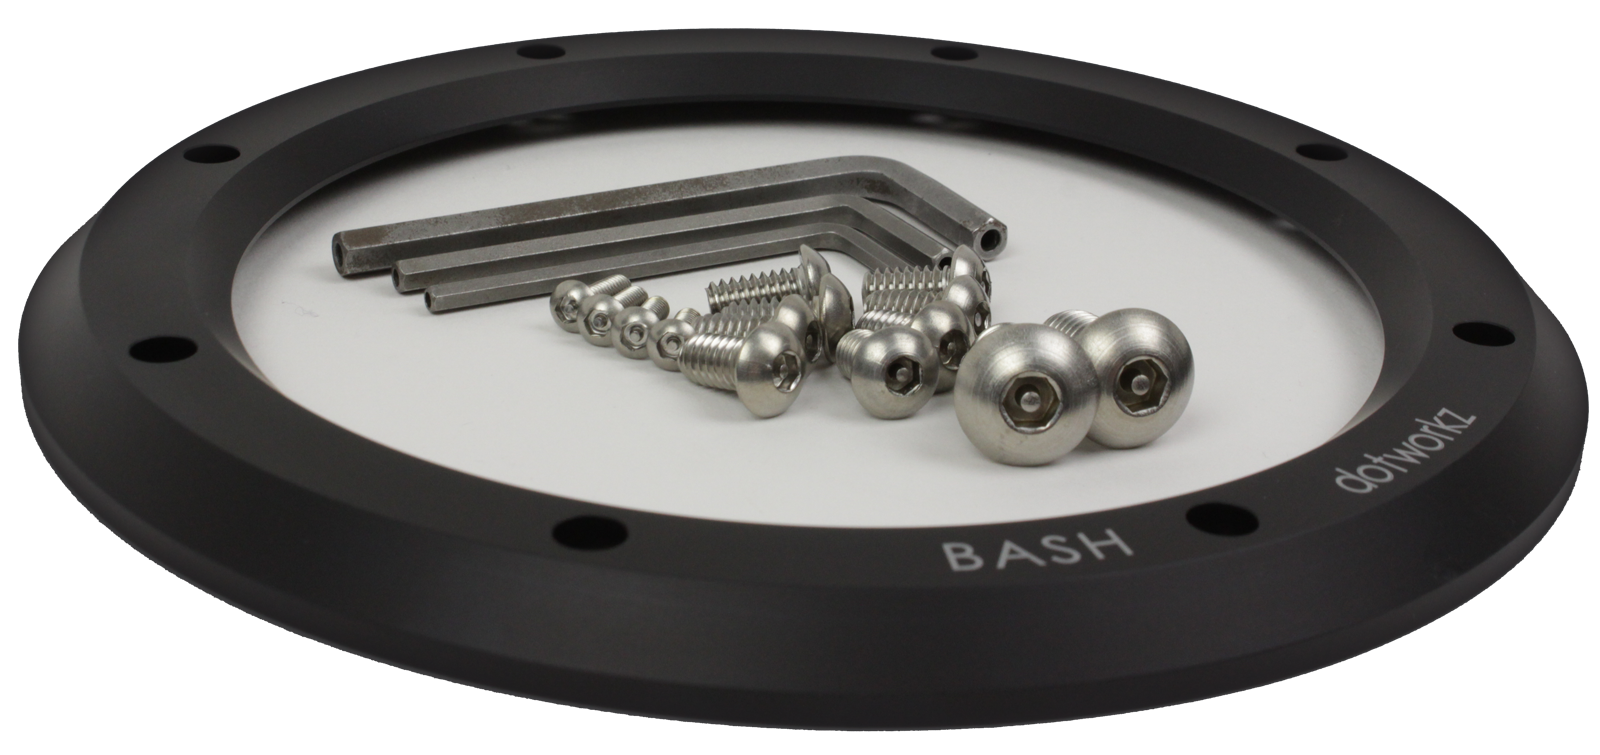 bash 2015 accessory vandal proof hardware pack model ac-vp-kit with front bash ring shown short